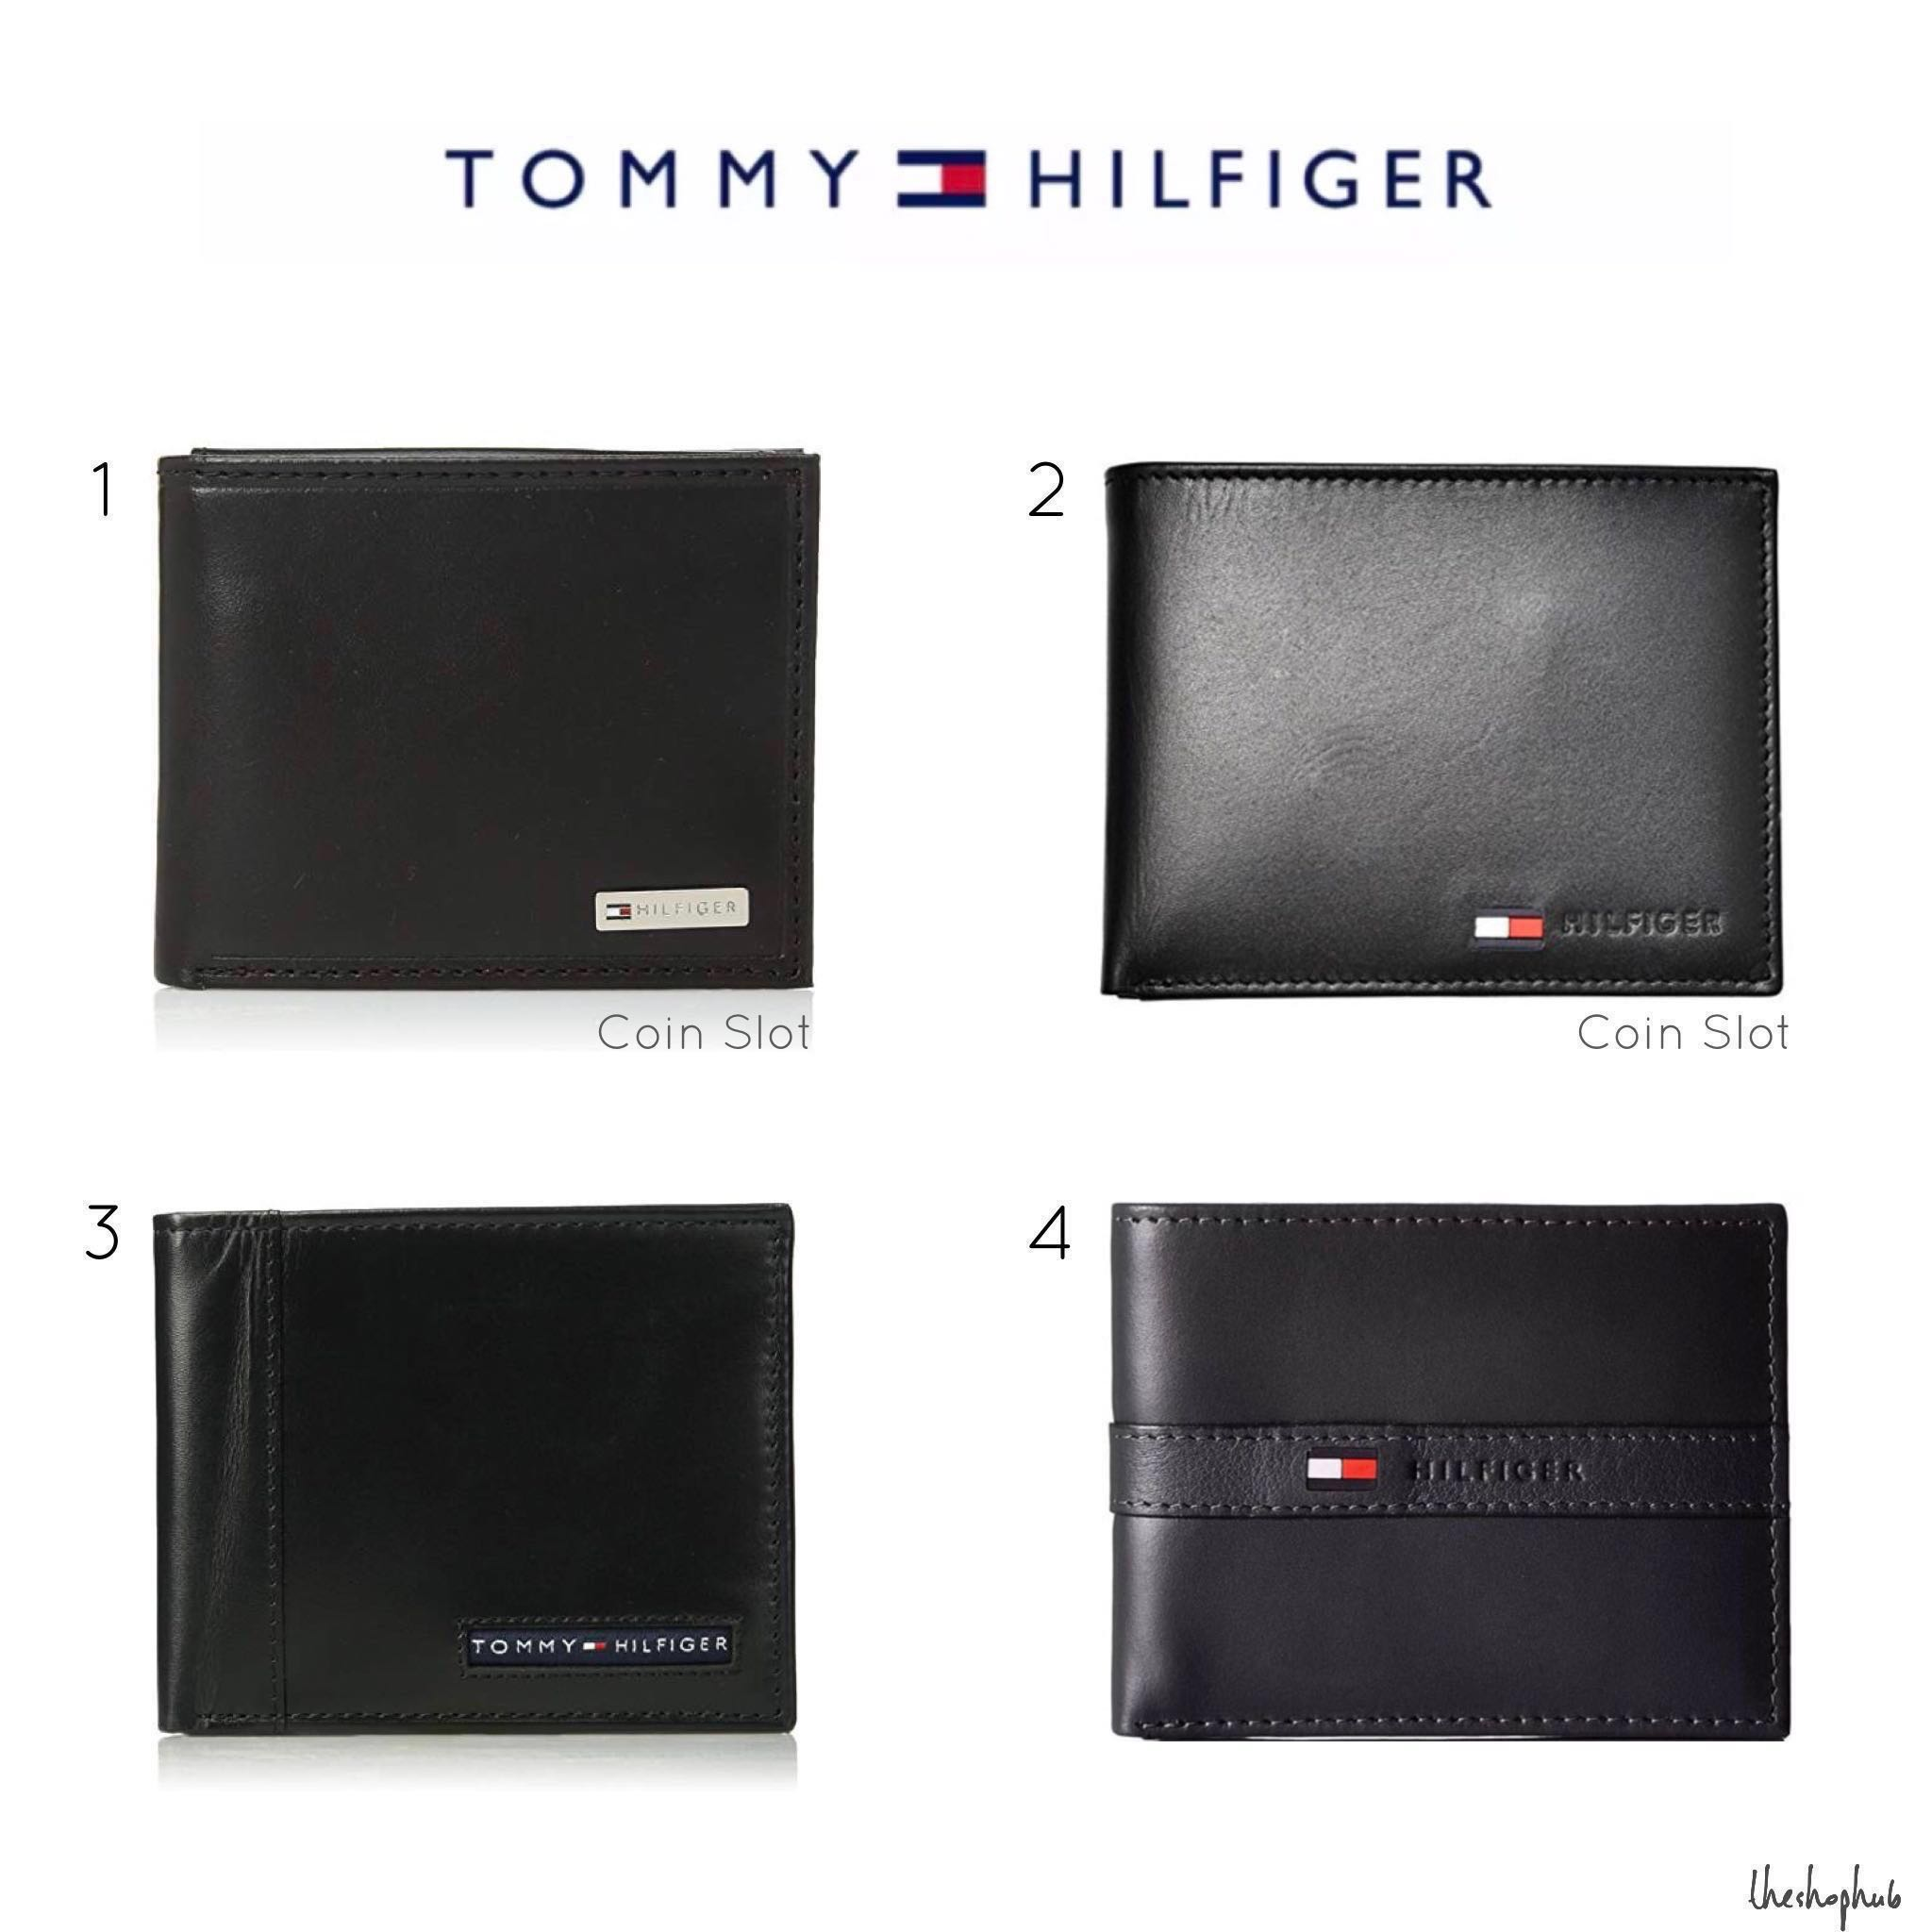 9fdc96f7d6 CHEAPEST* Authentic + New Tommy Hilfiger Wallet | GENUINE LEATHER ...